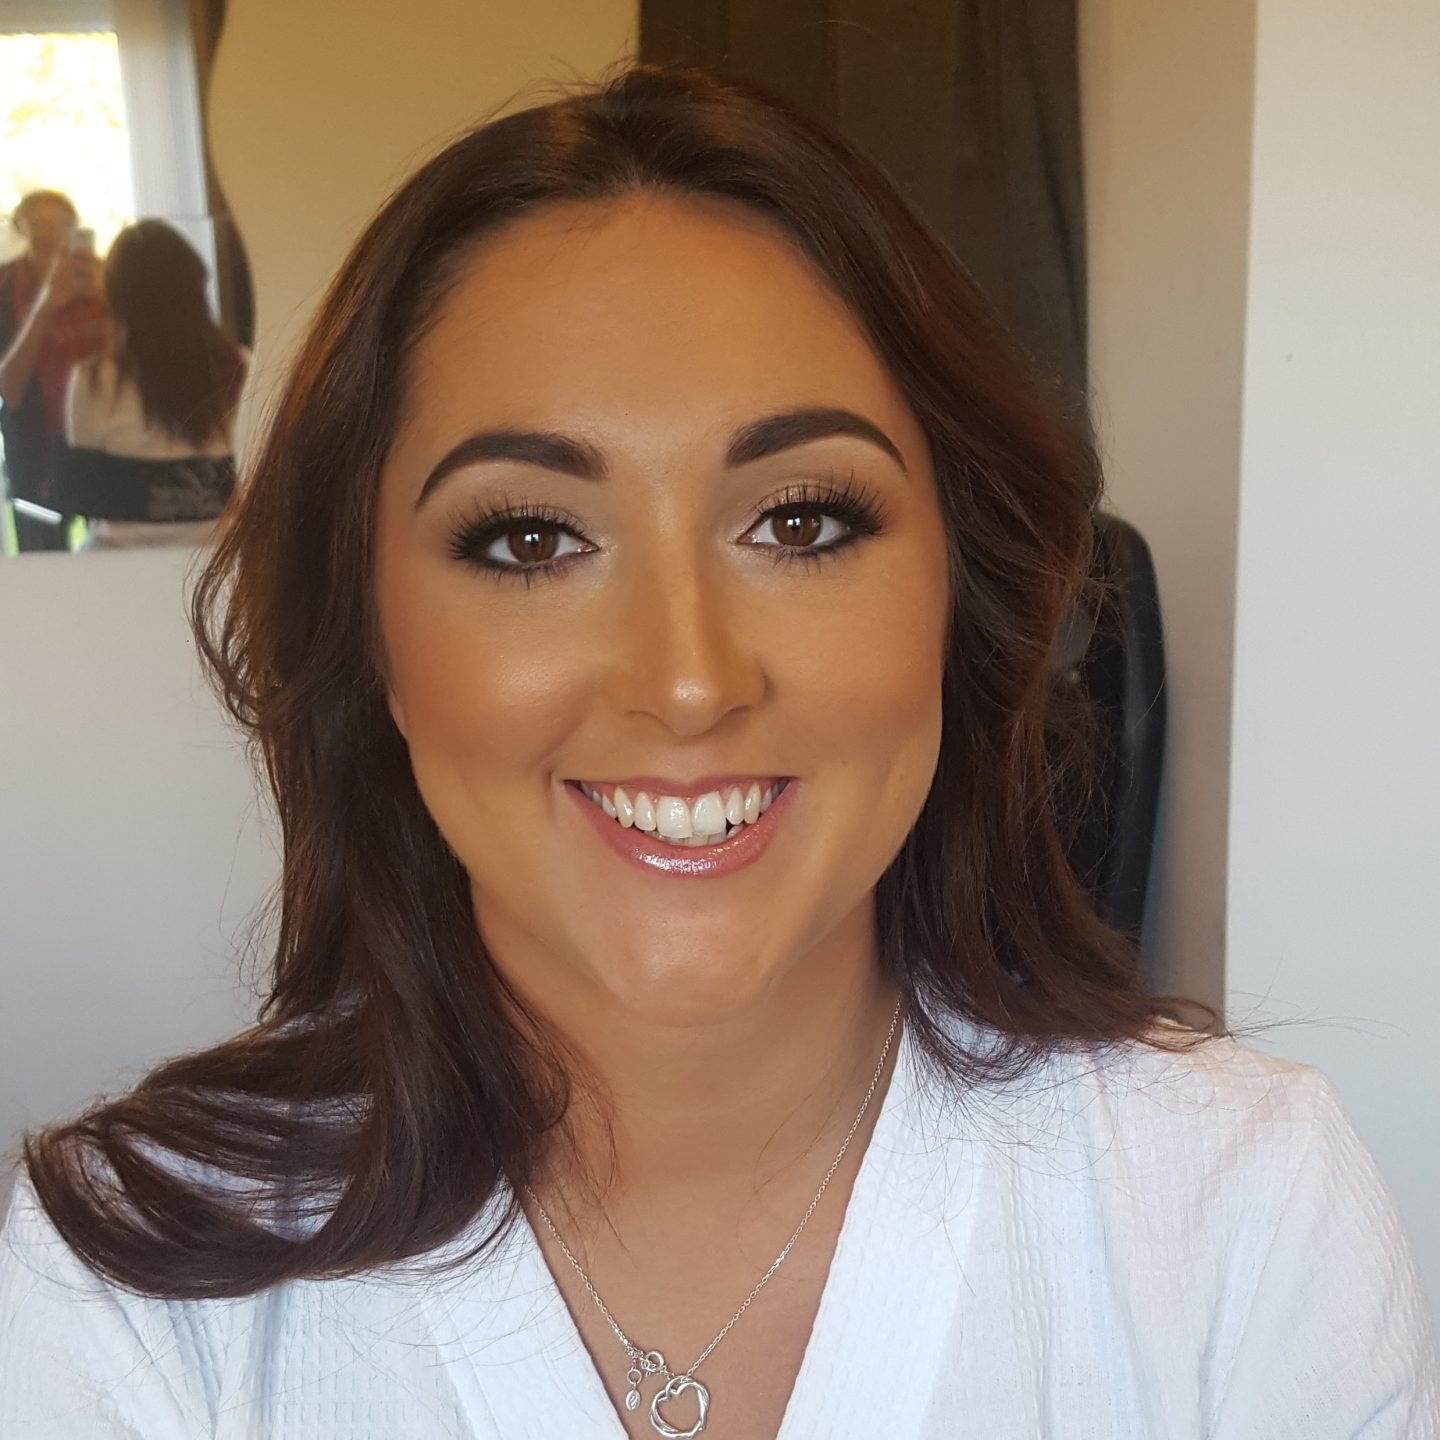 GET THE LOOK CREATE A NATURAL GOLDEN GLOW